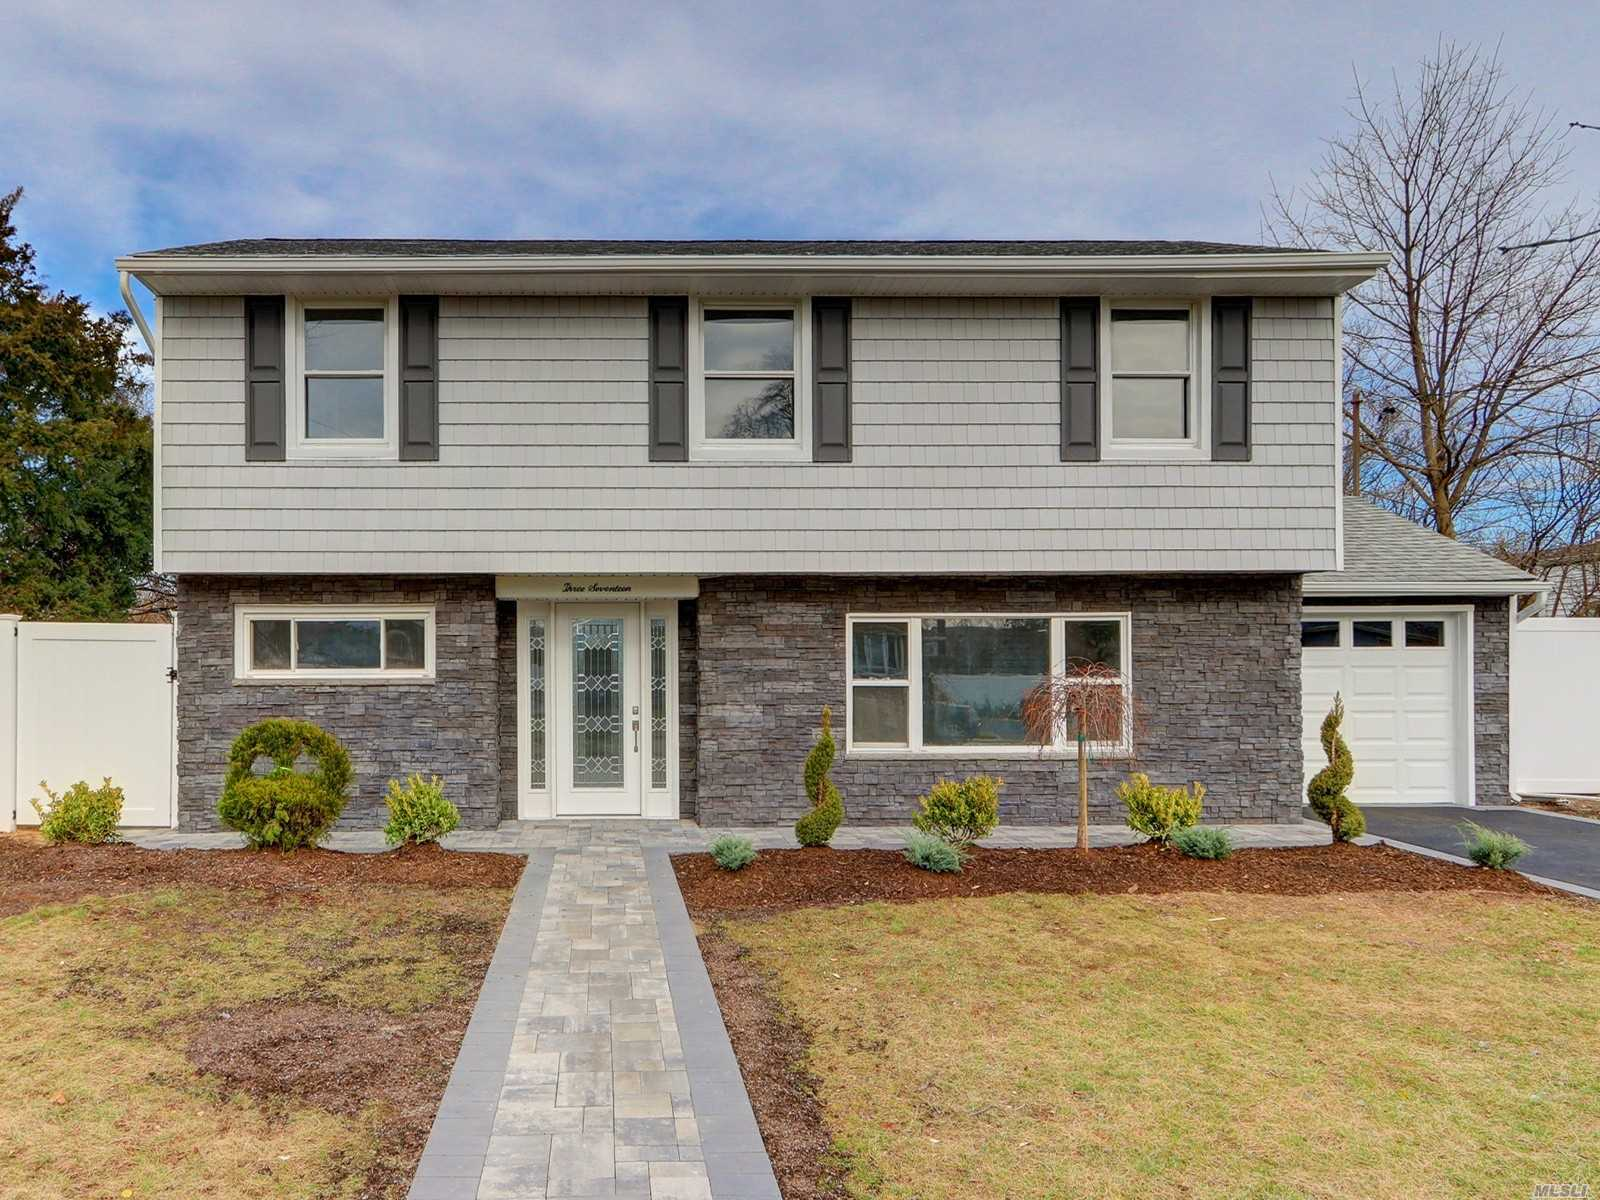 Dream Home In Plainedge School District, Redone To Perfection. Gorgeous Kitchen Featuring All New Appliances, Cabinets And Countertops. Refinished Floors, Updated Bathrooms, Split Ac Systems All Make This A Great Package On An Oversized Lot.